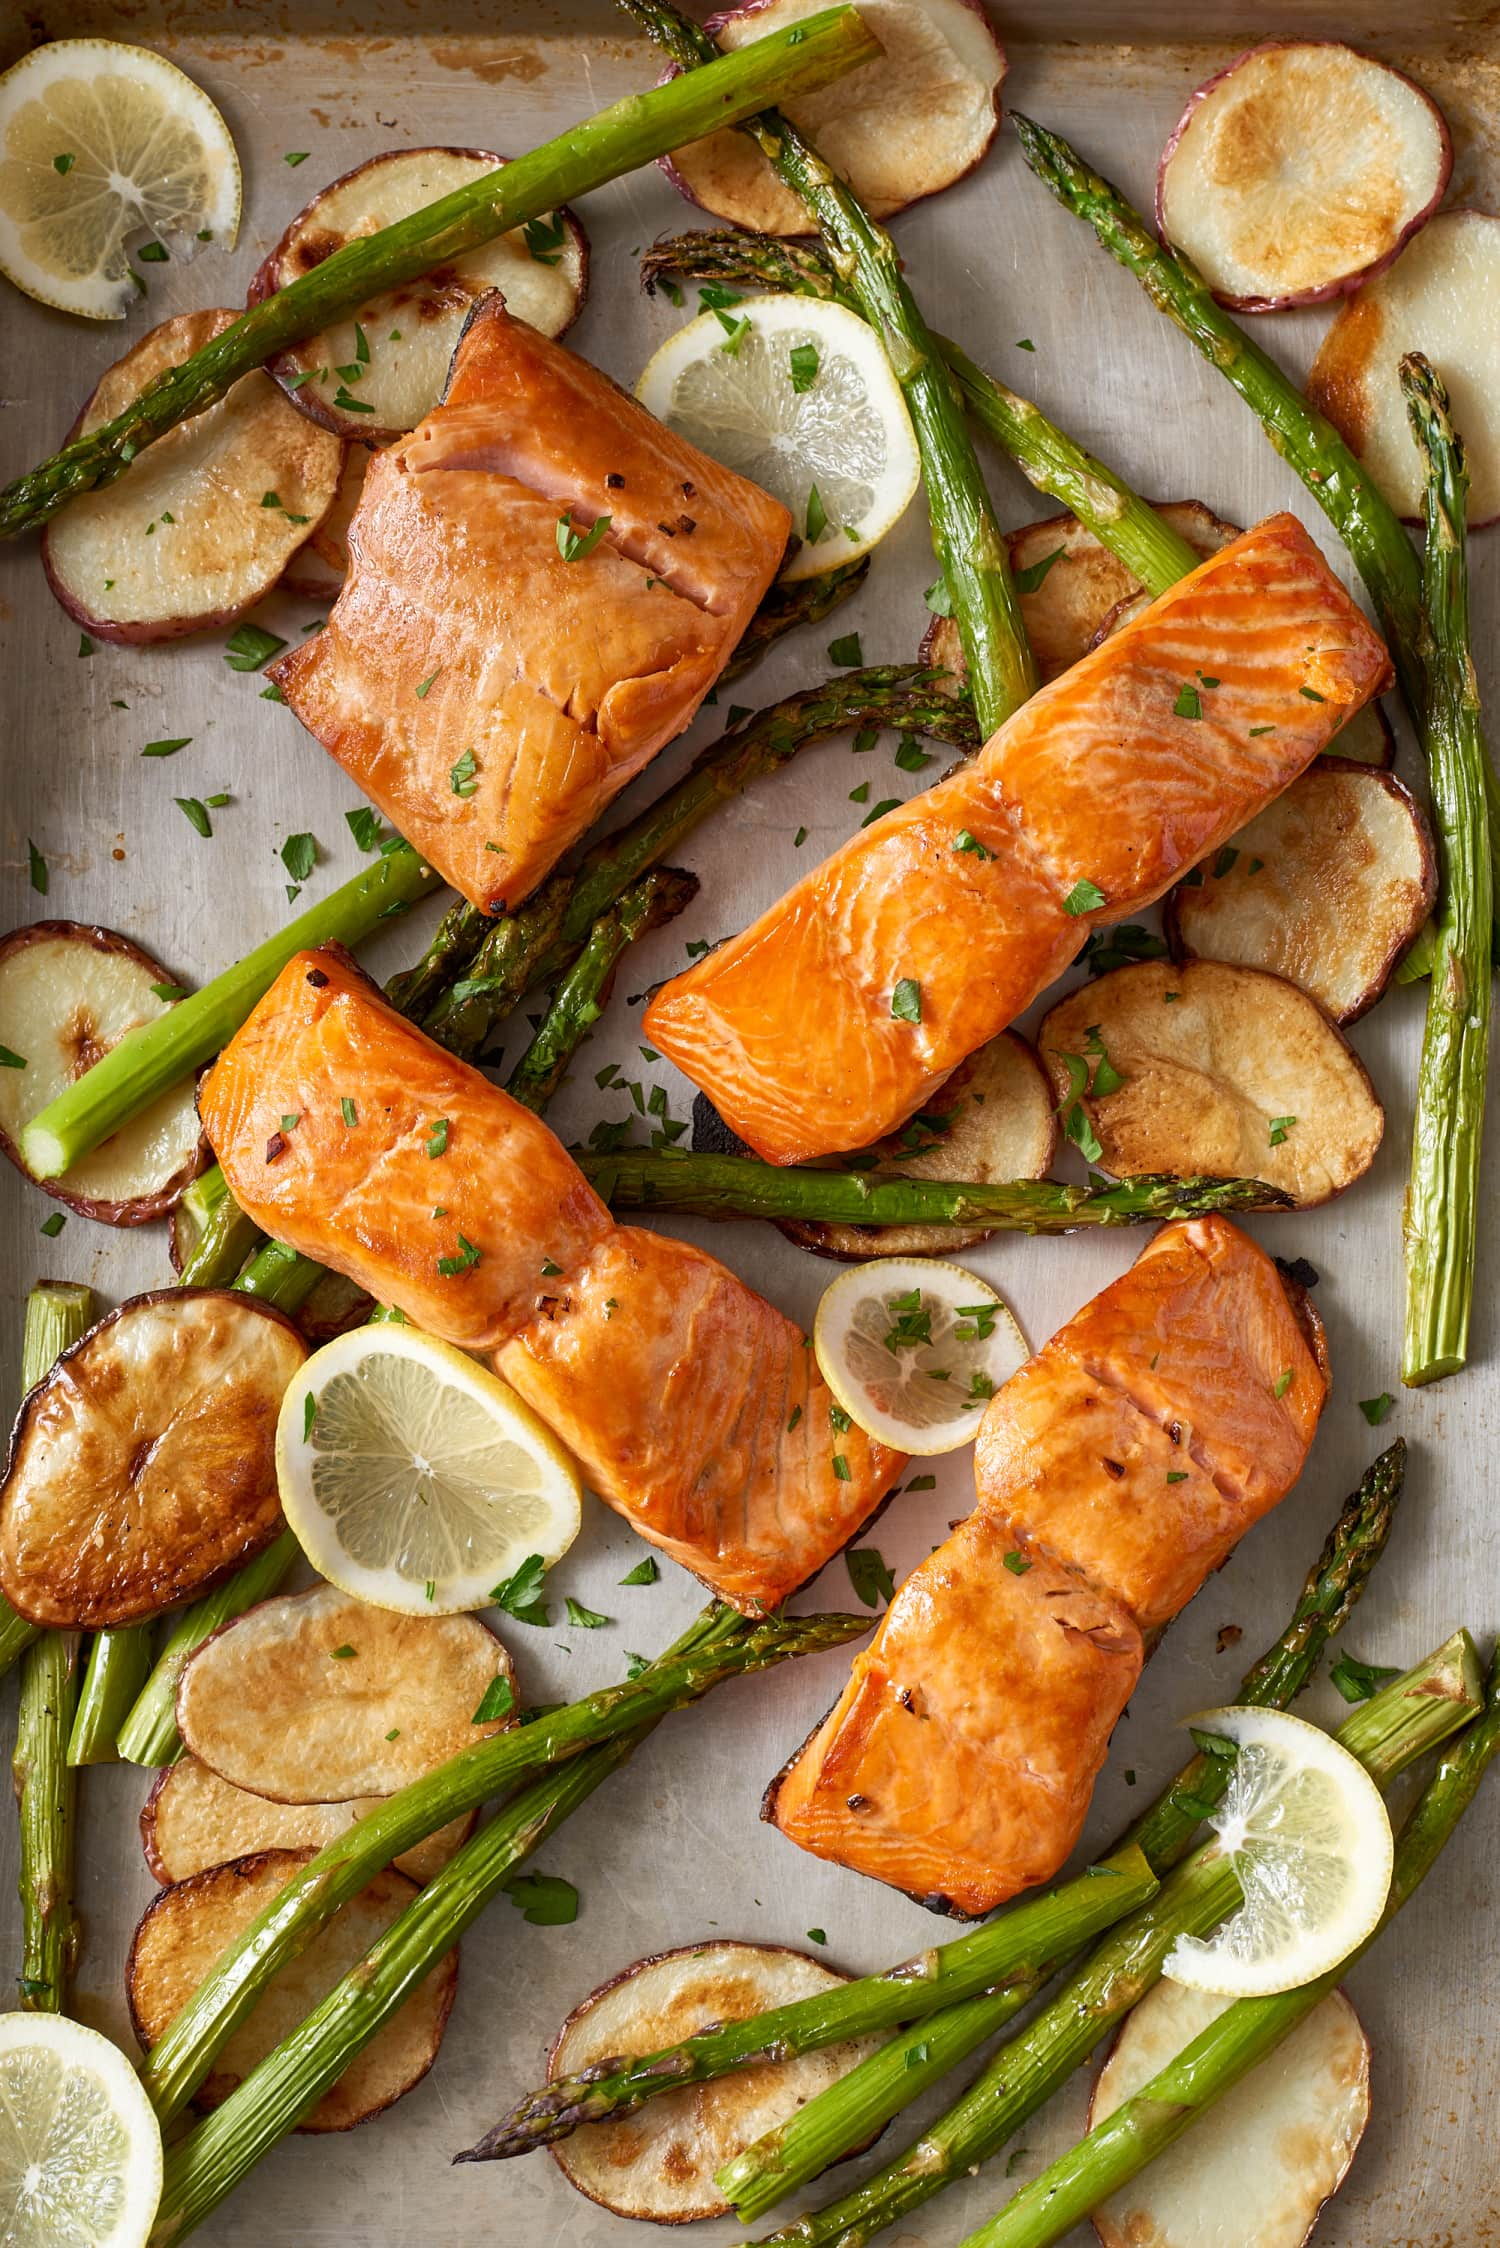 20 Salmon Recipes to Make for Breakfast, Lunch, and Dinner